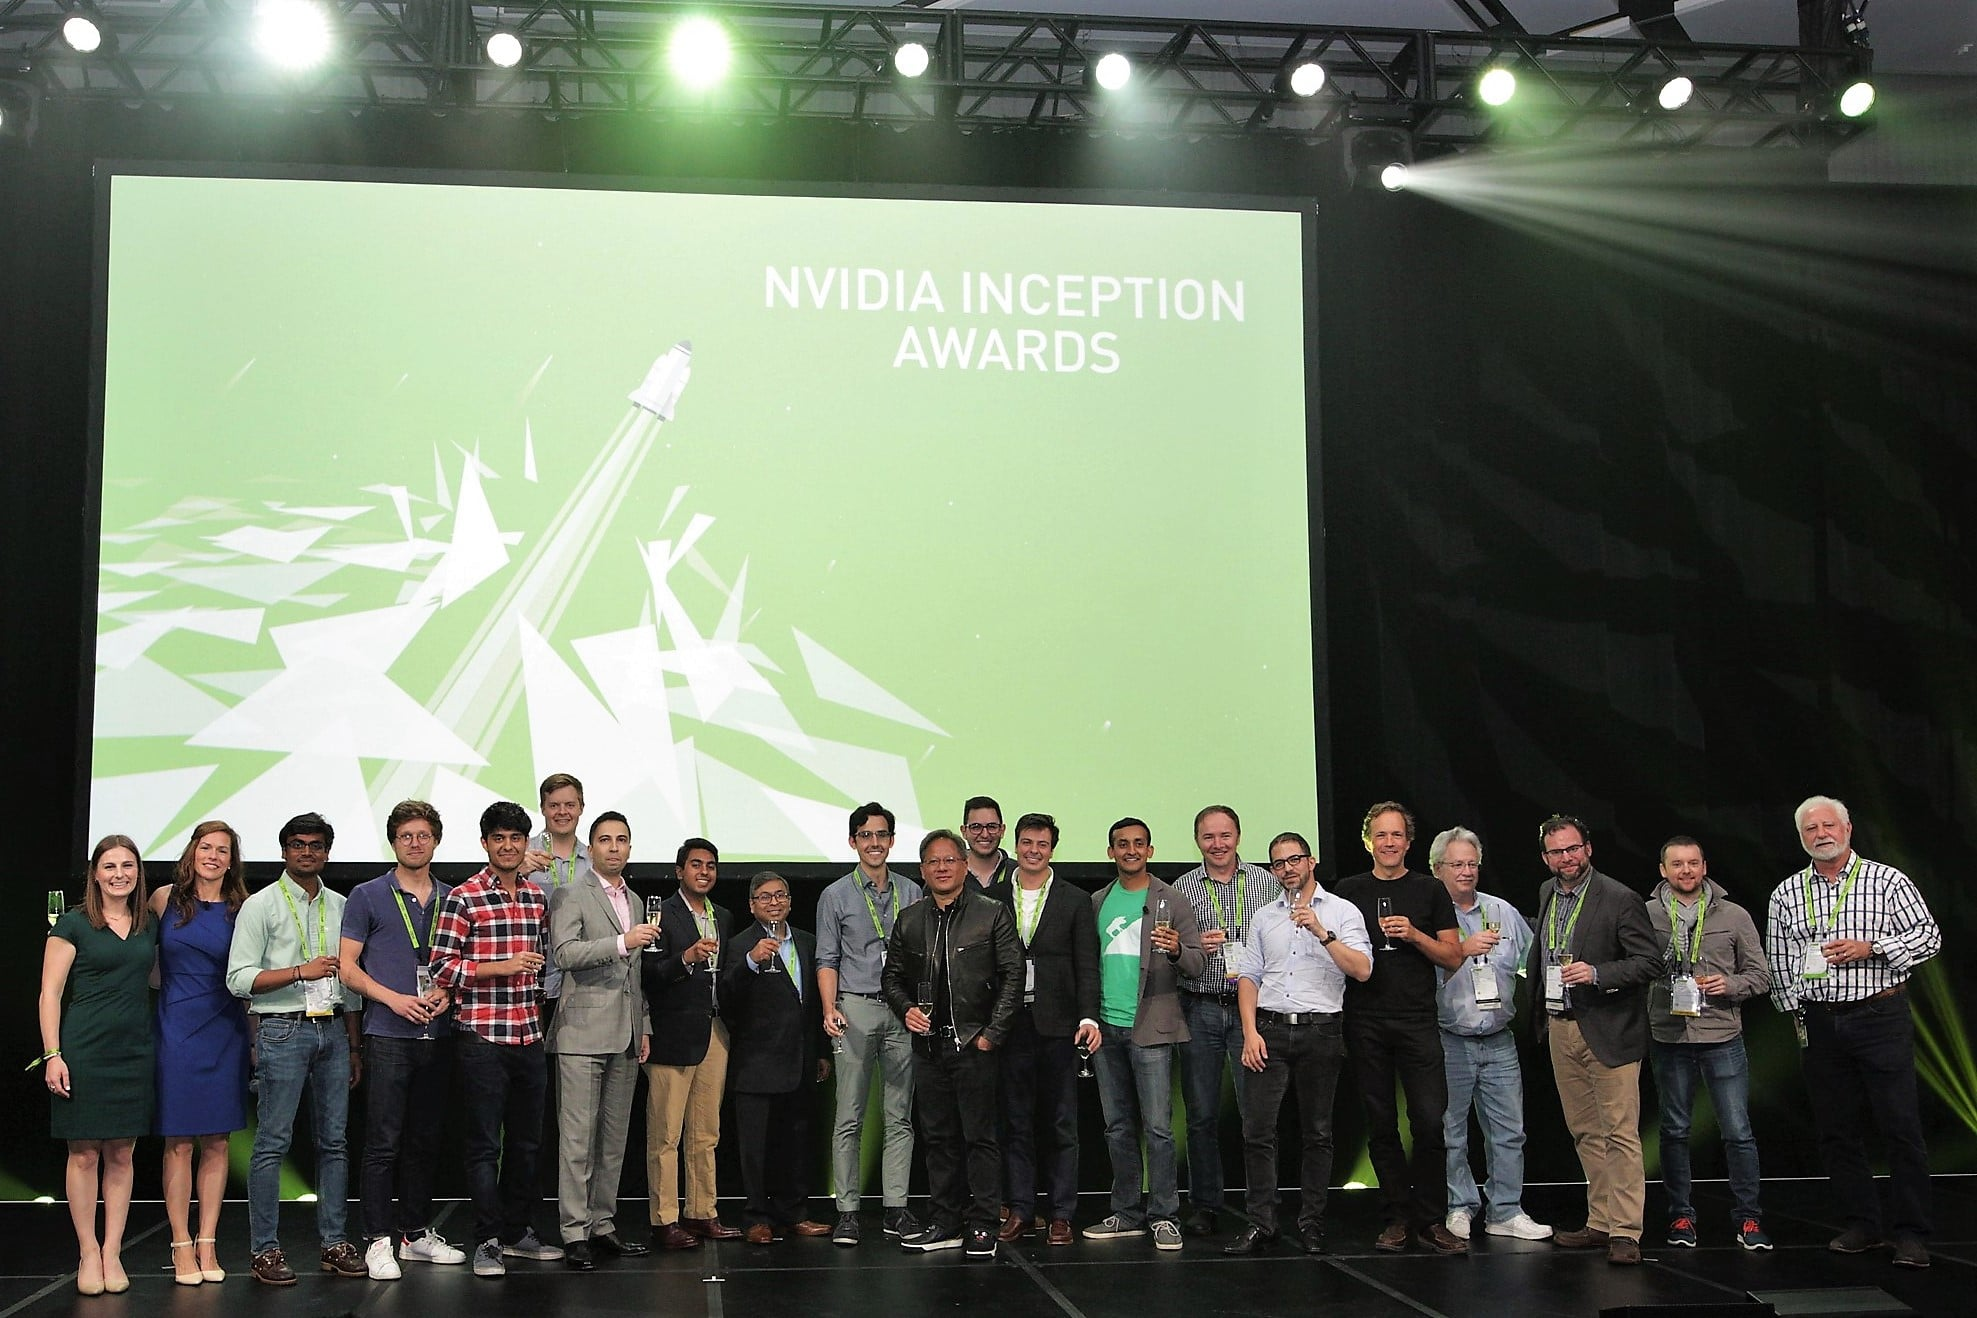 Winners in the NVIDIA Inception competition for AI startups.